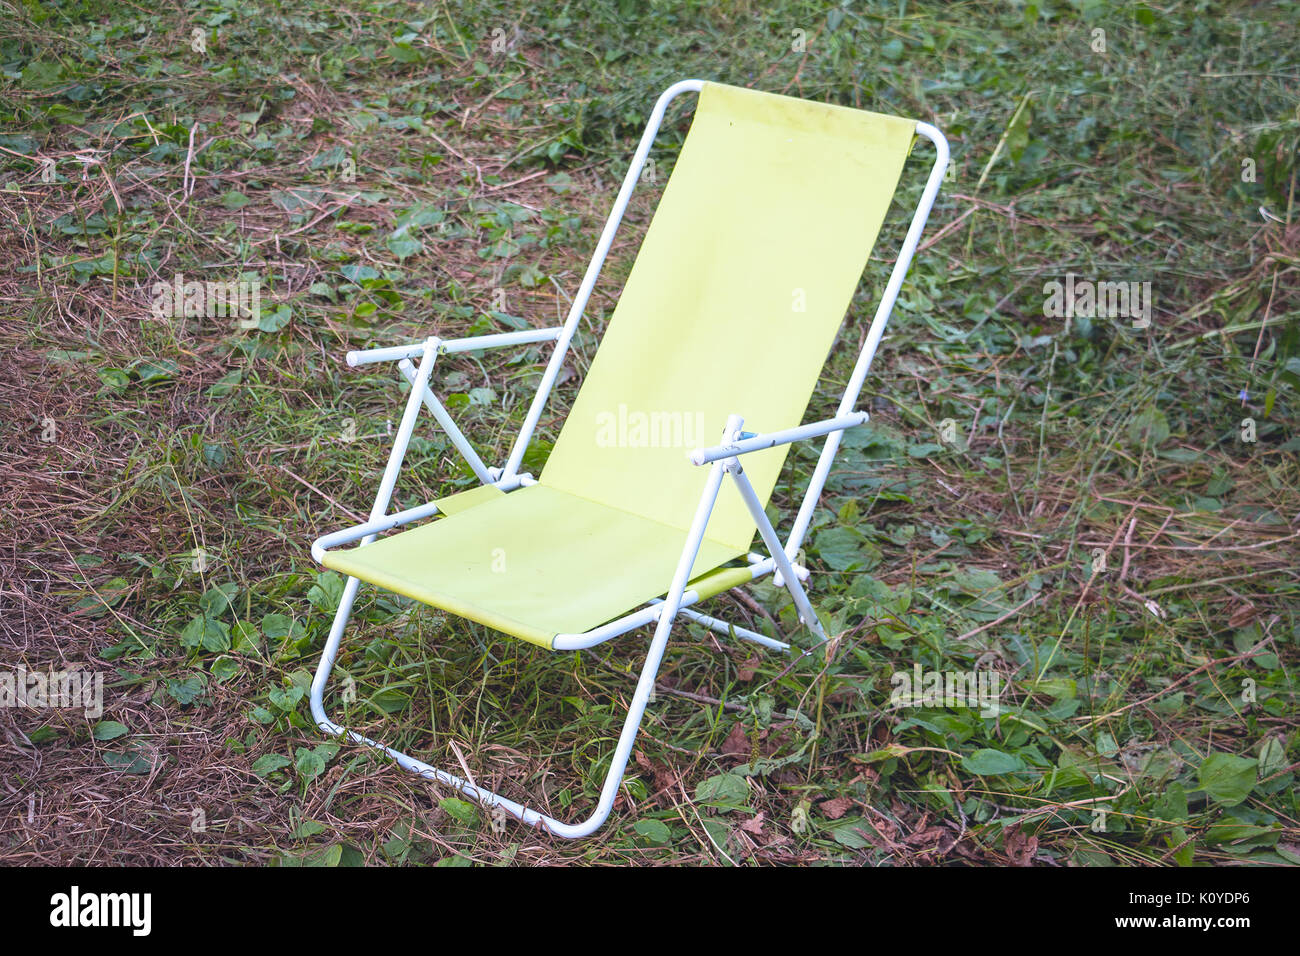 Yellow deck chair stock photos yellow deck chair stock for Ariel chaise lounge